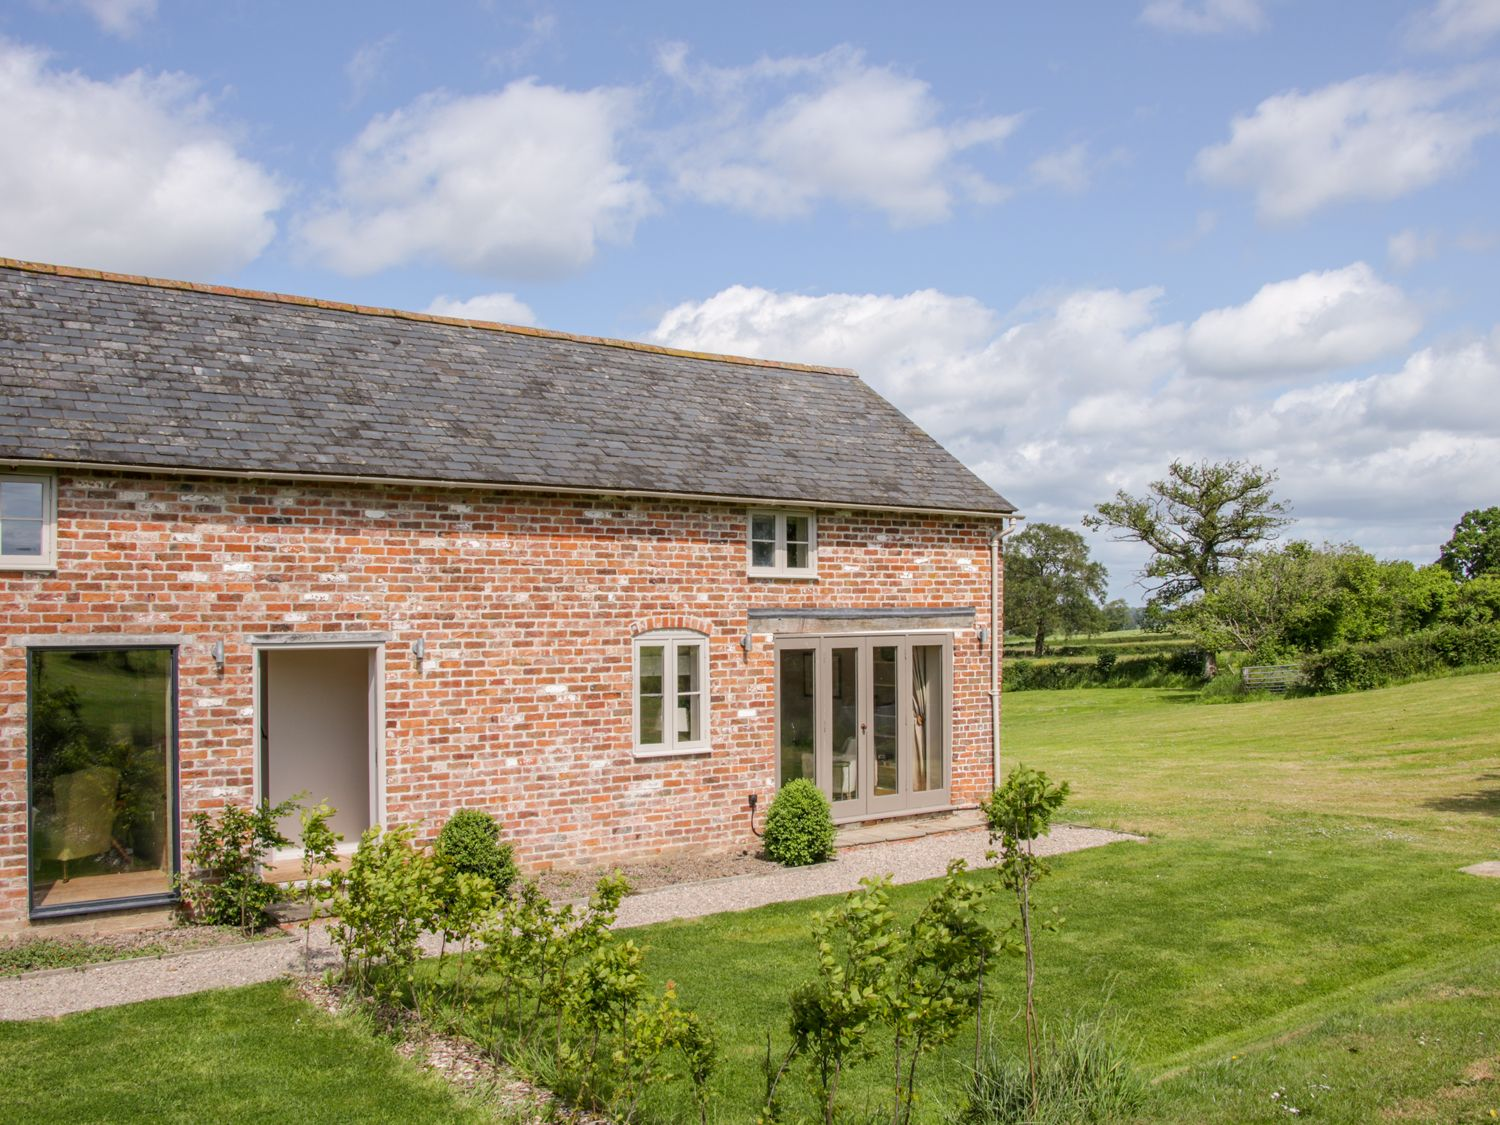 Annexe - Shropshire - 975394 - photo 1